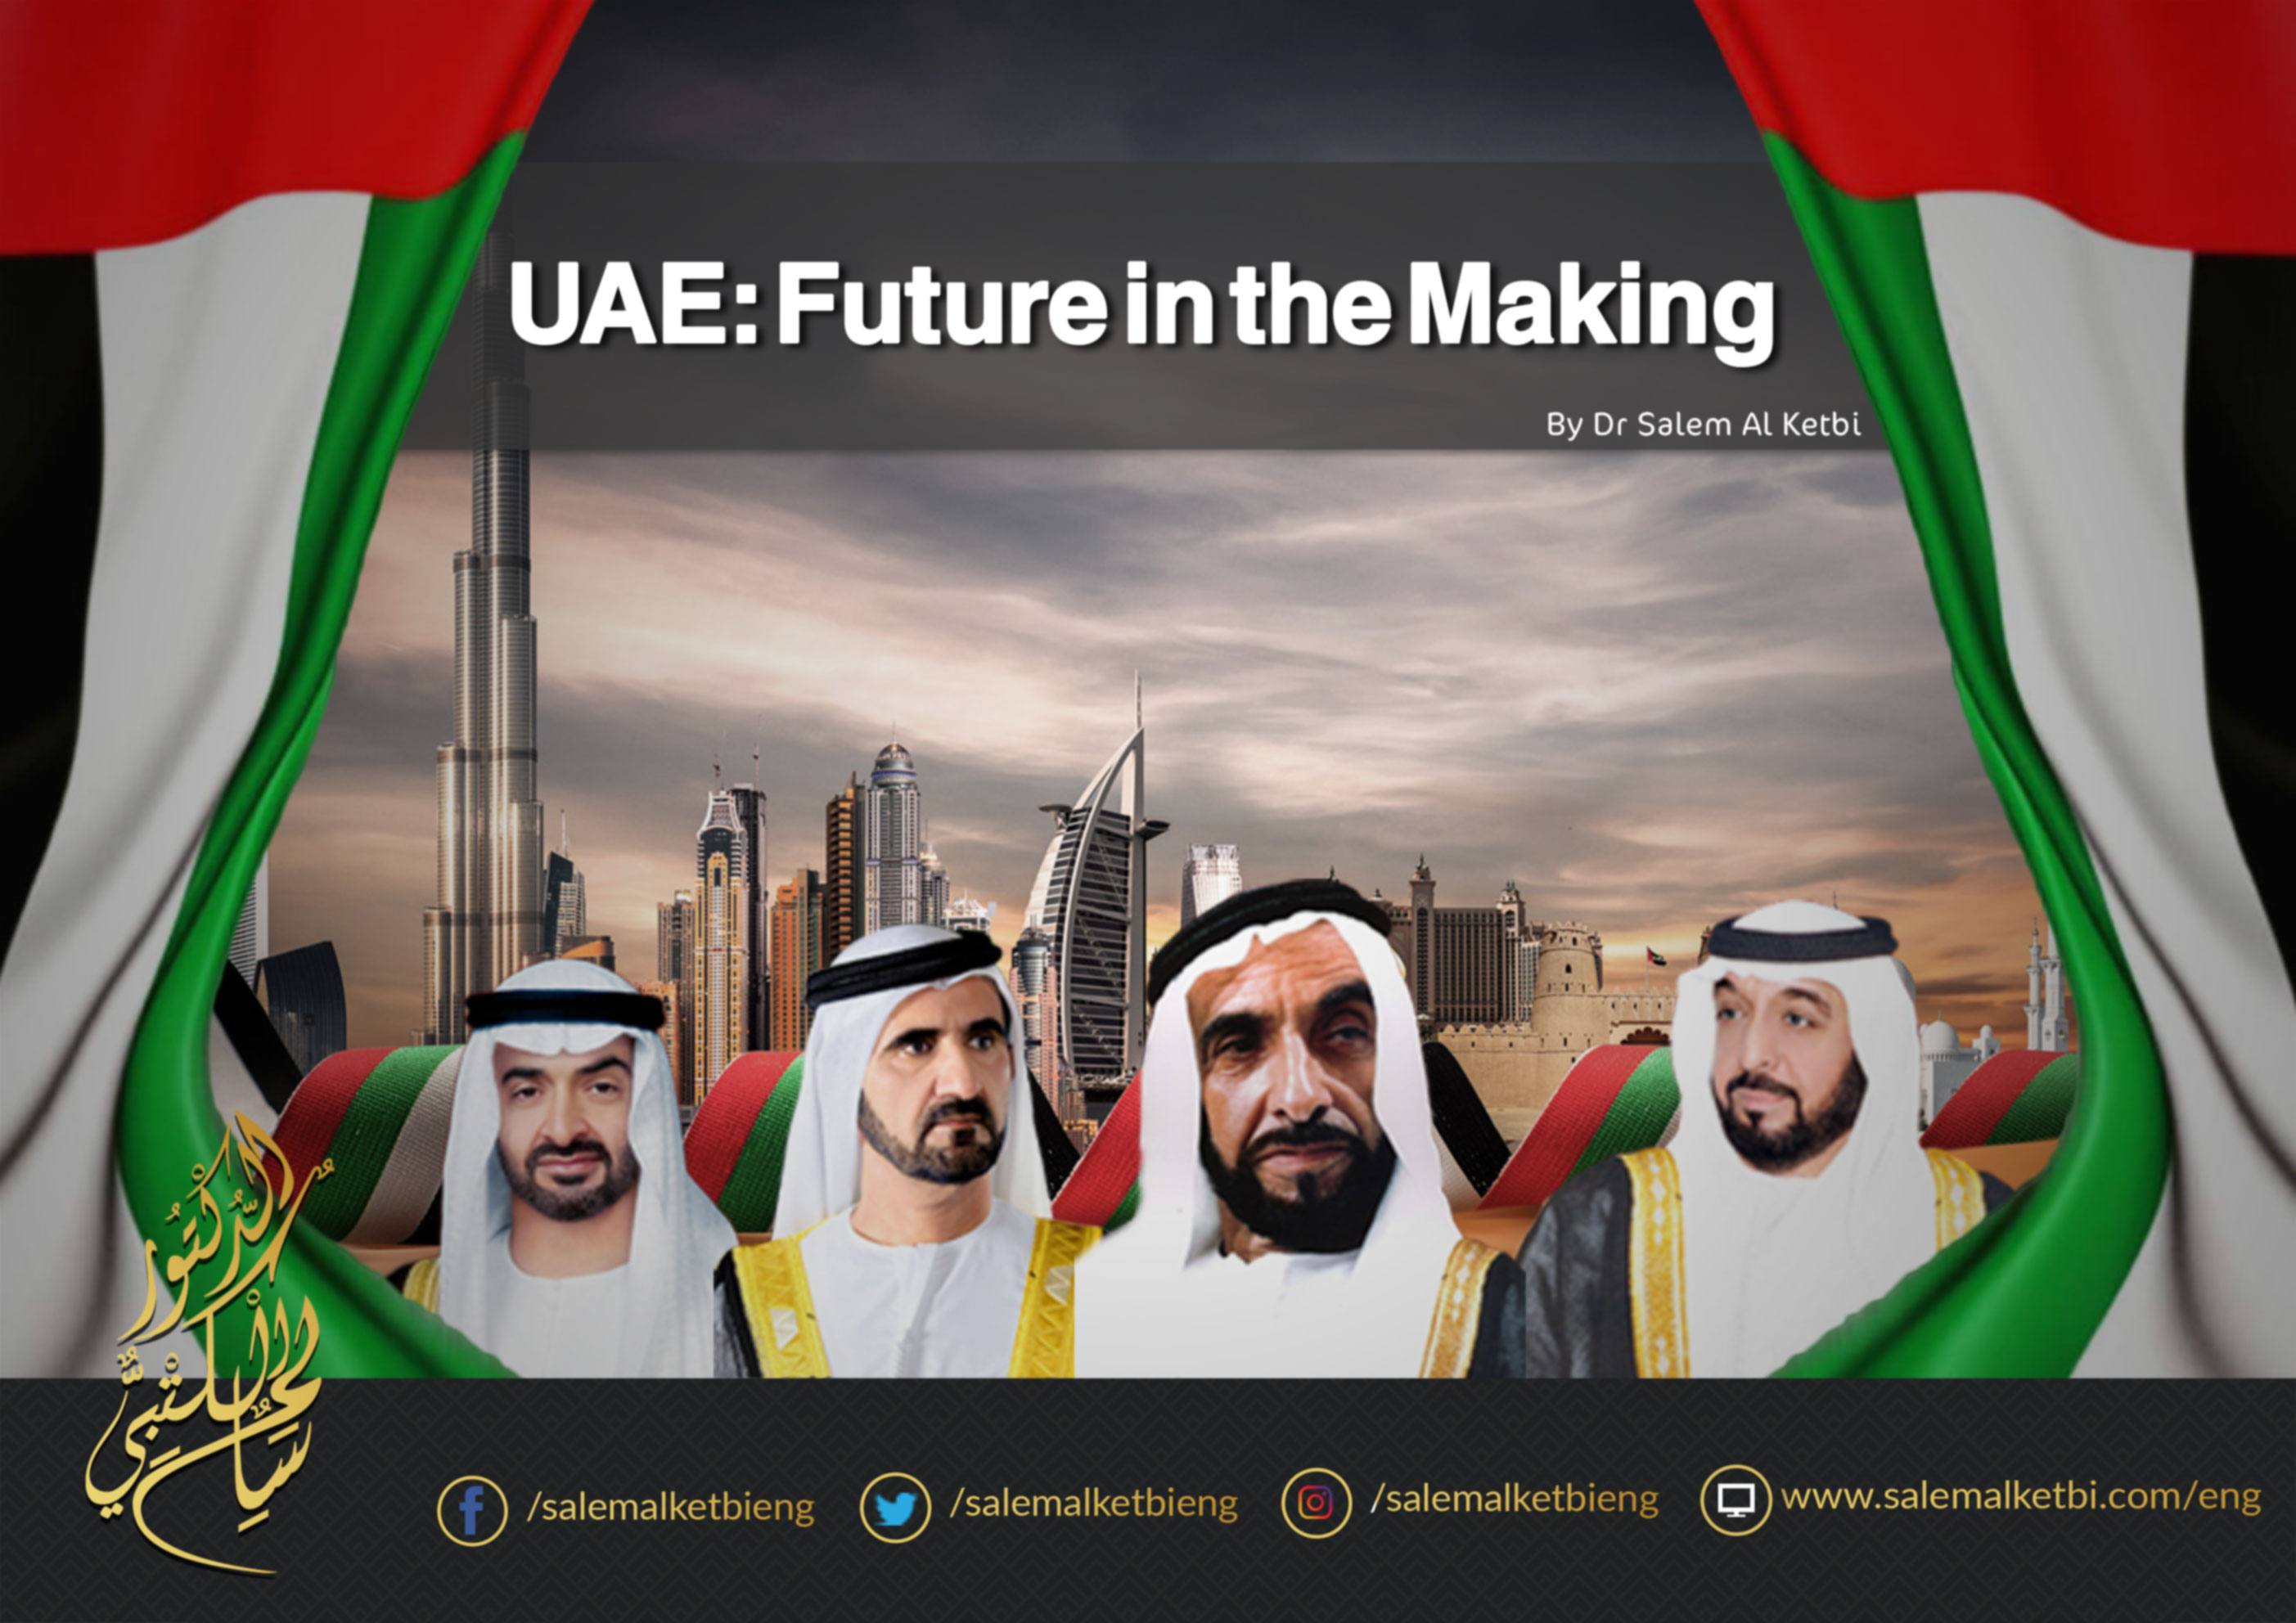 UAE: Future in the Making